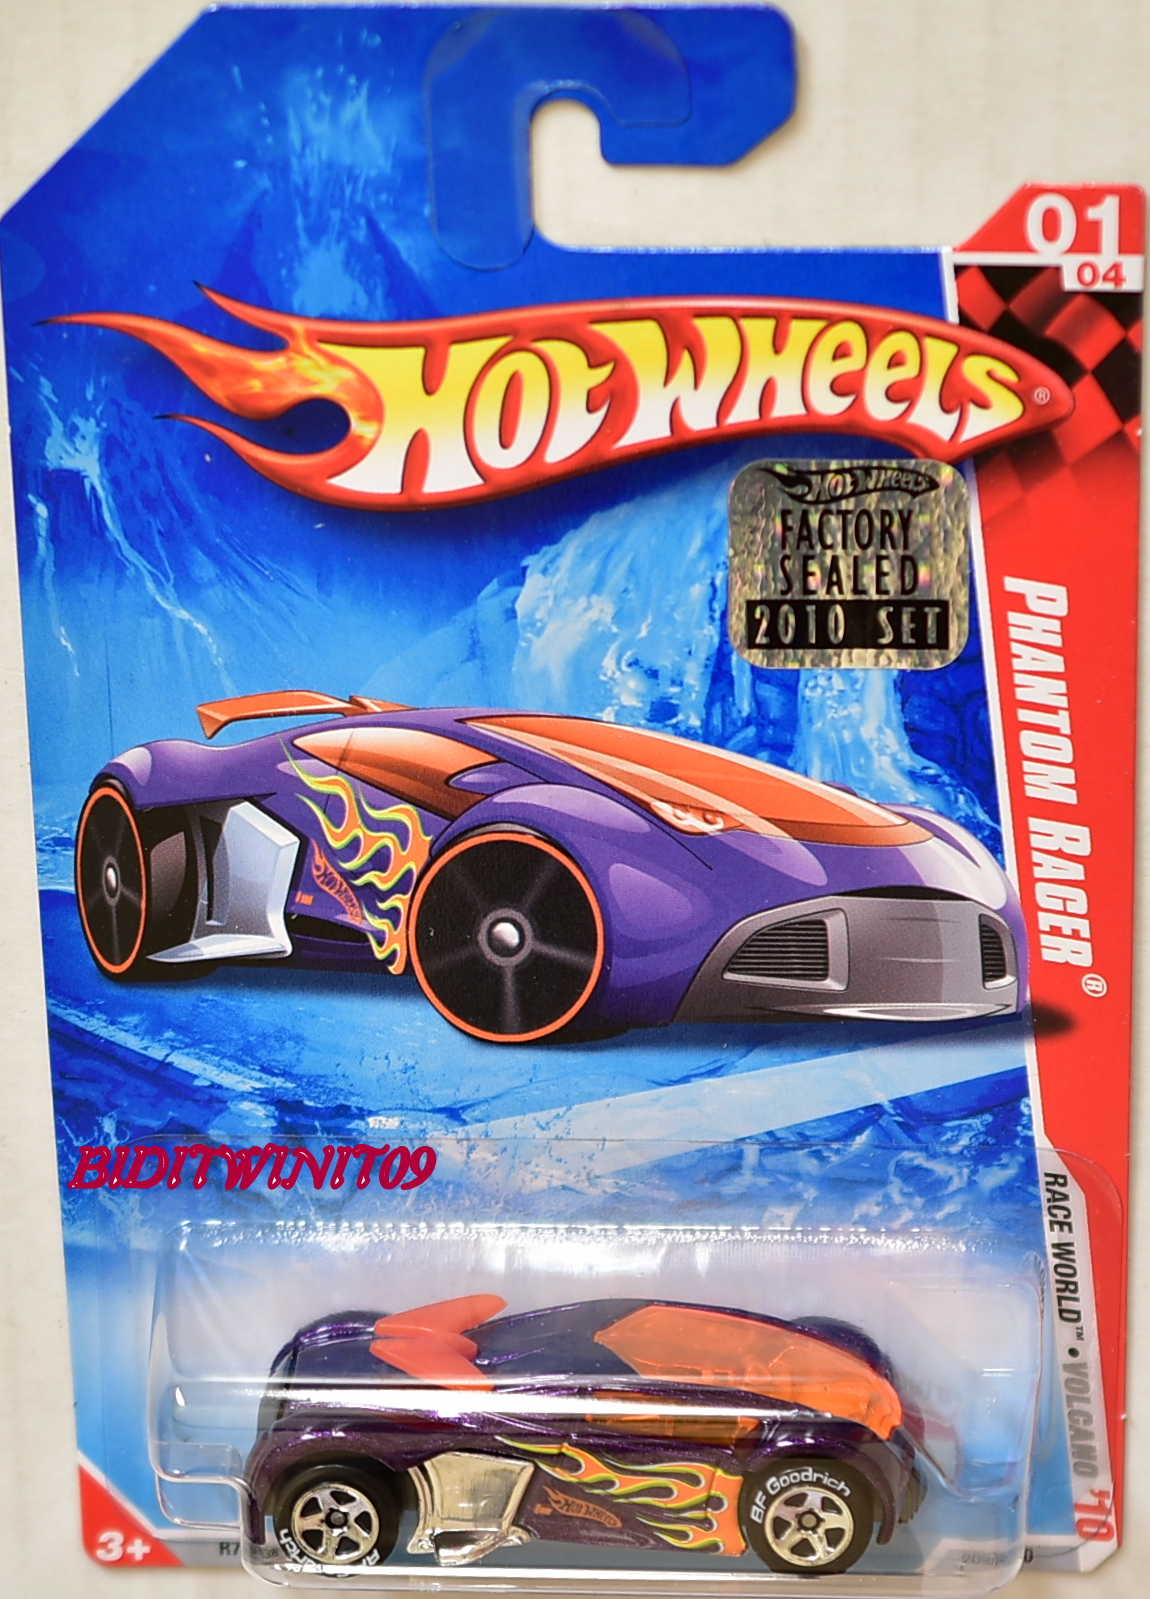 HOT WHEELS 2010 RACE WORLD PHANTOM RACER W/ BF GOODRICH FACTORY SEALED E+